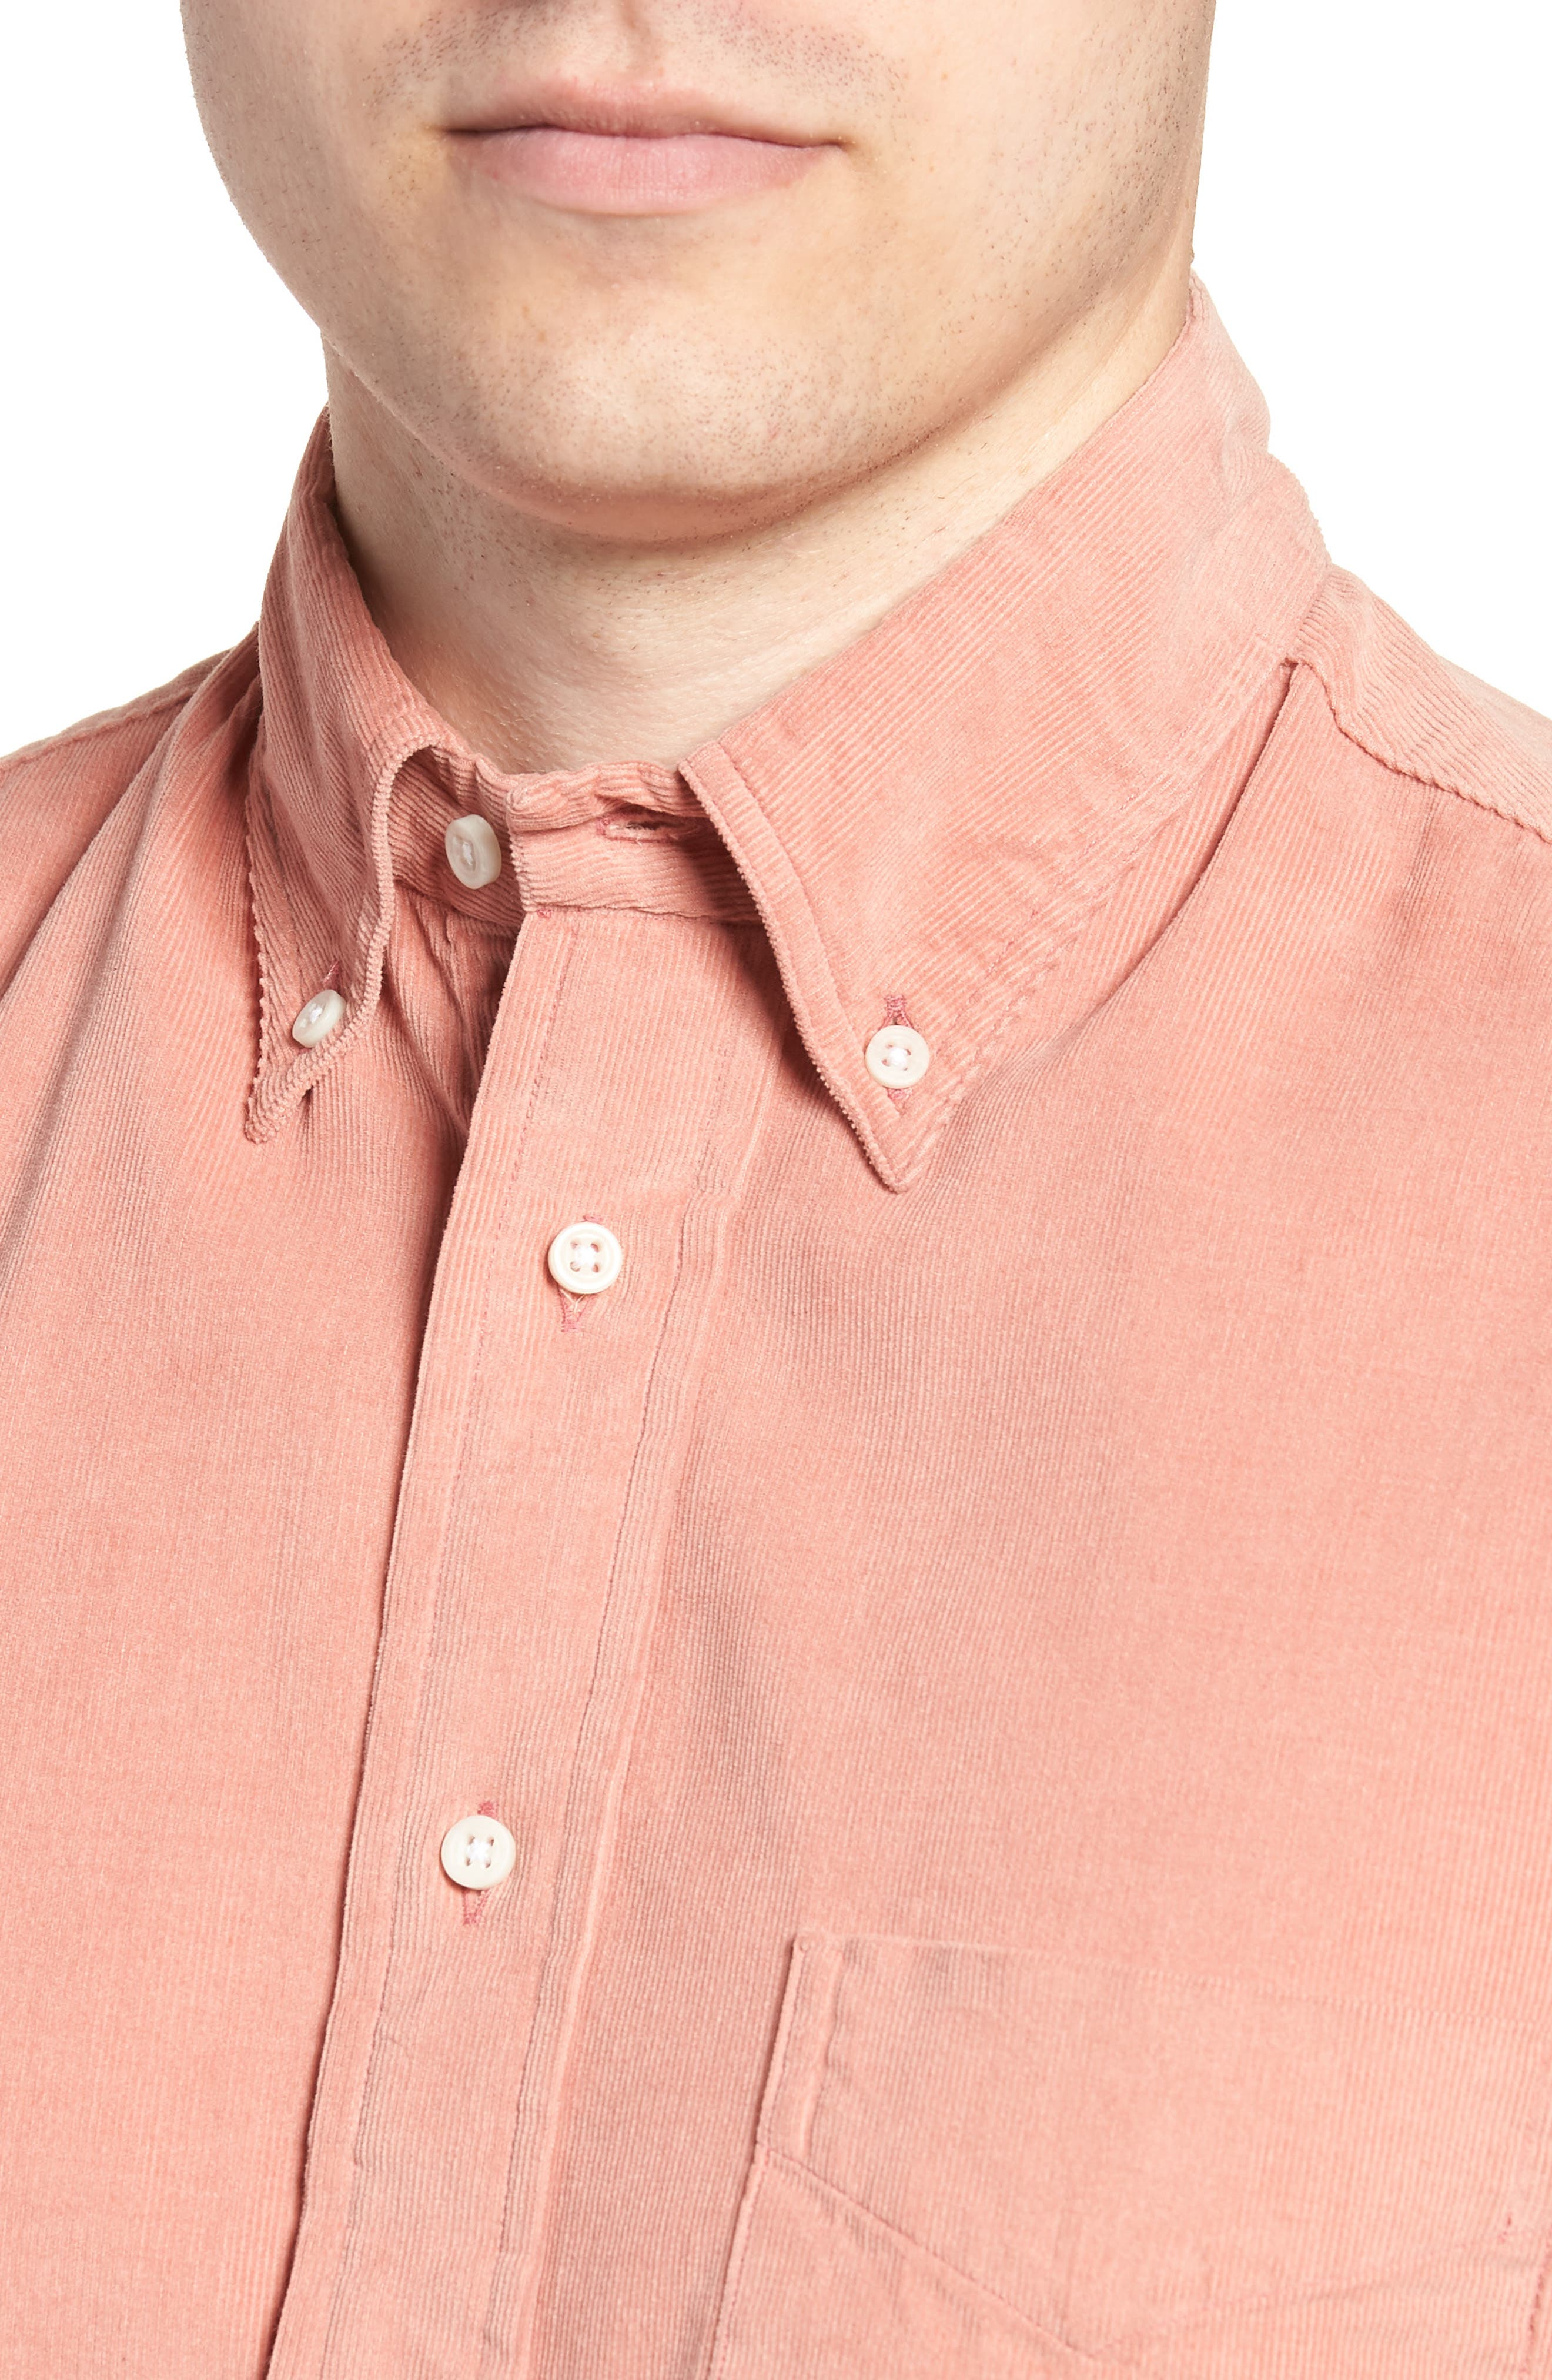 Regular Fit Corduroy Shirt,                             Alternate thumbnail 2, color,                             PINK